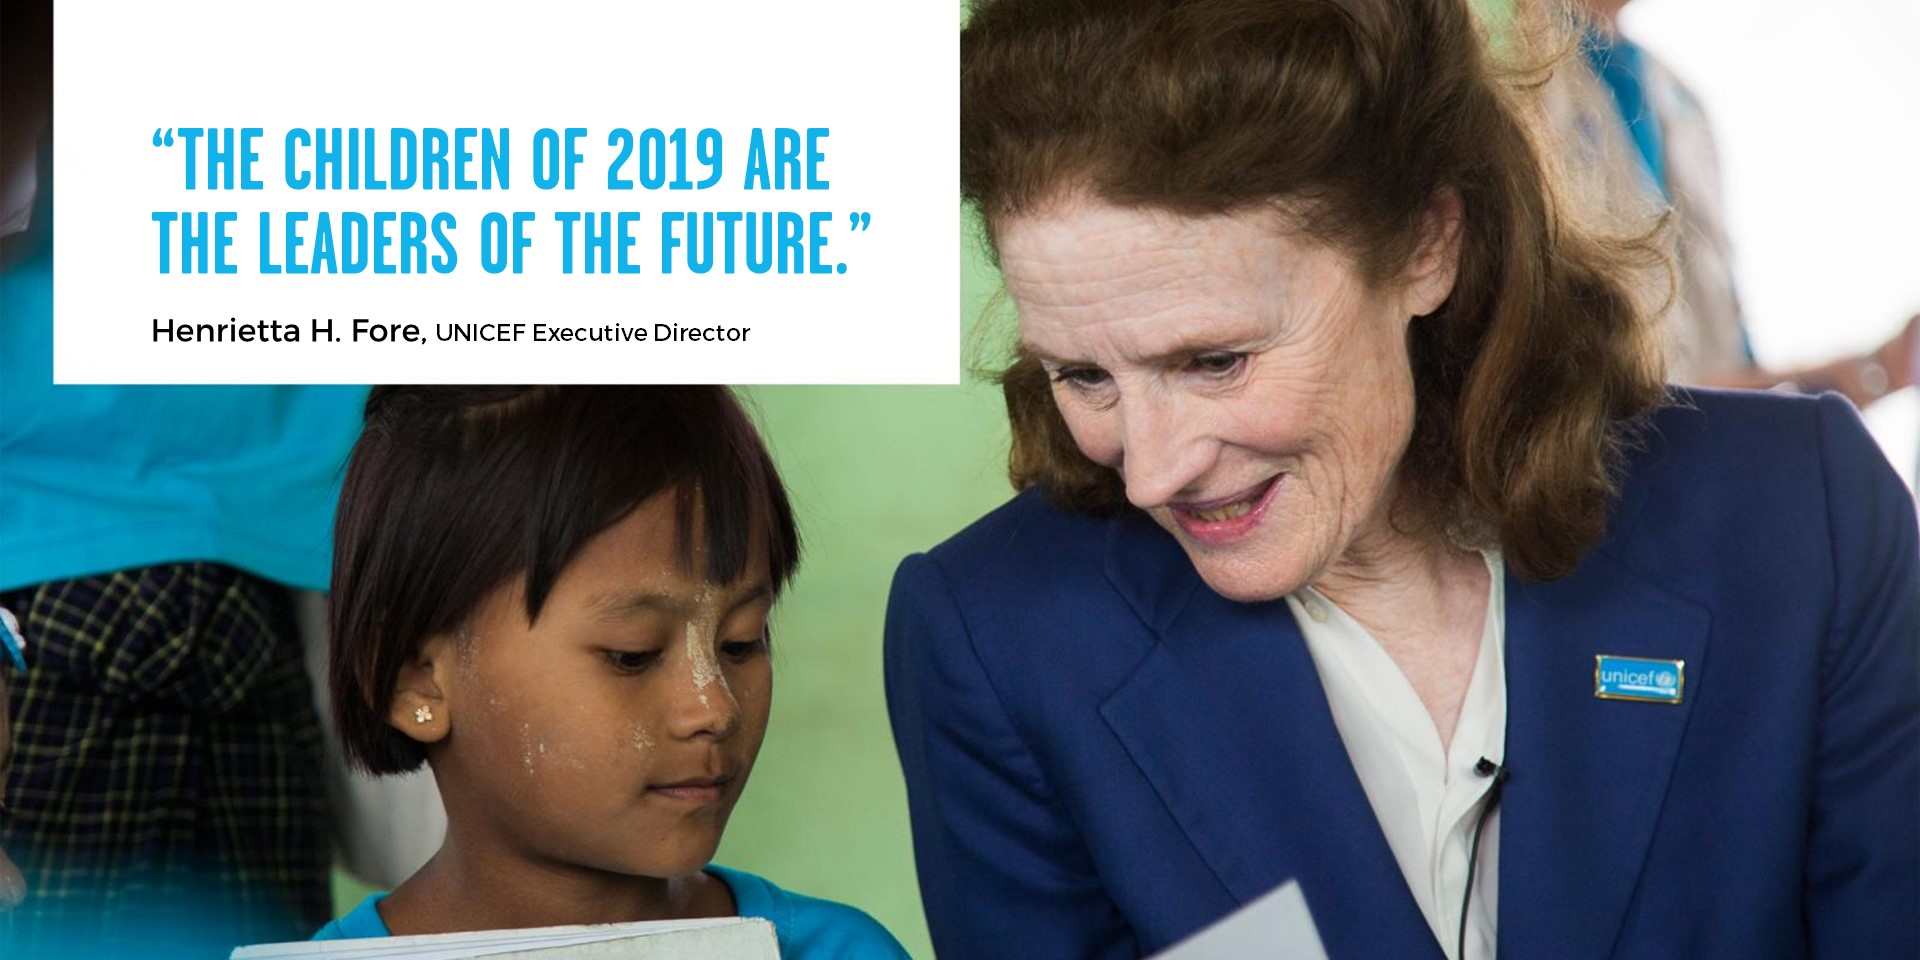 """UNICEF Executive Director Henrietta Fore with a child. In the photo a box with the caption """"The children of 2019 are the leaders of the future""""."""